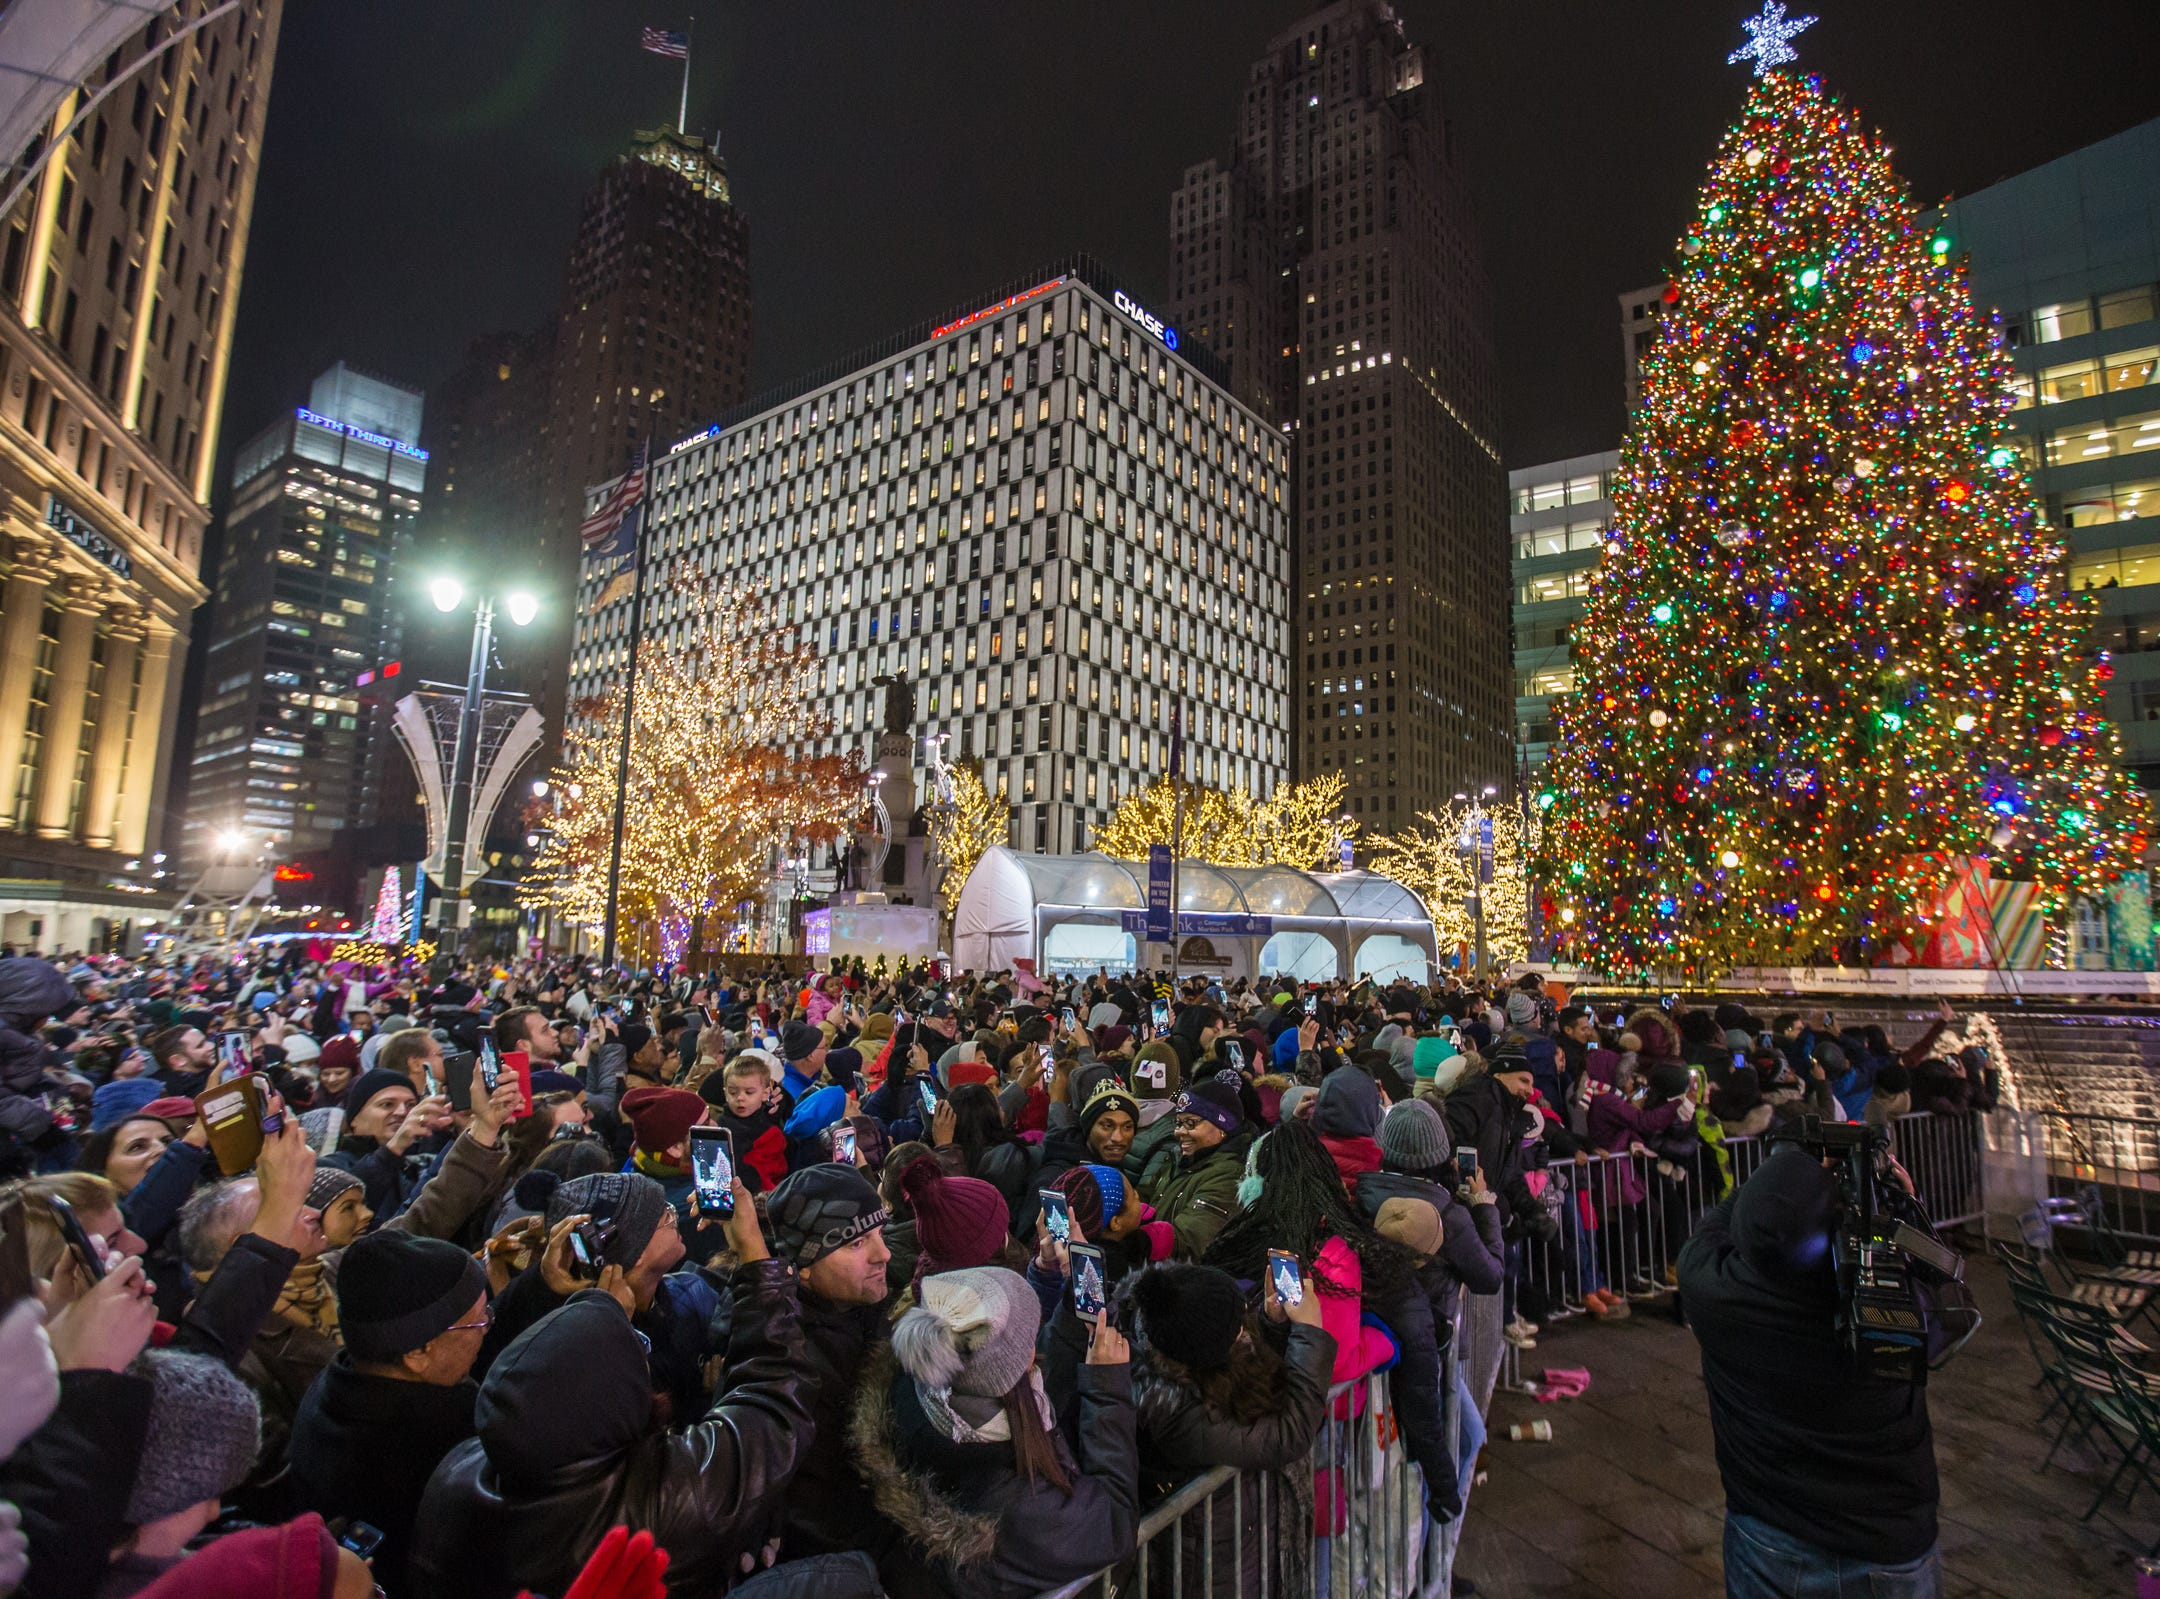 People take photos as the tree is lit during the annual tree lighting event at Campus Martius Park in downtown Detroit on Friday, November 16, 2018.